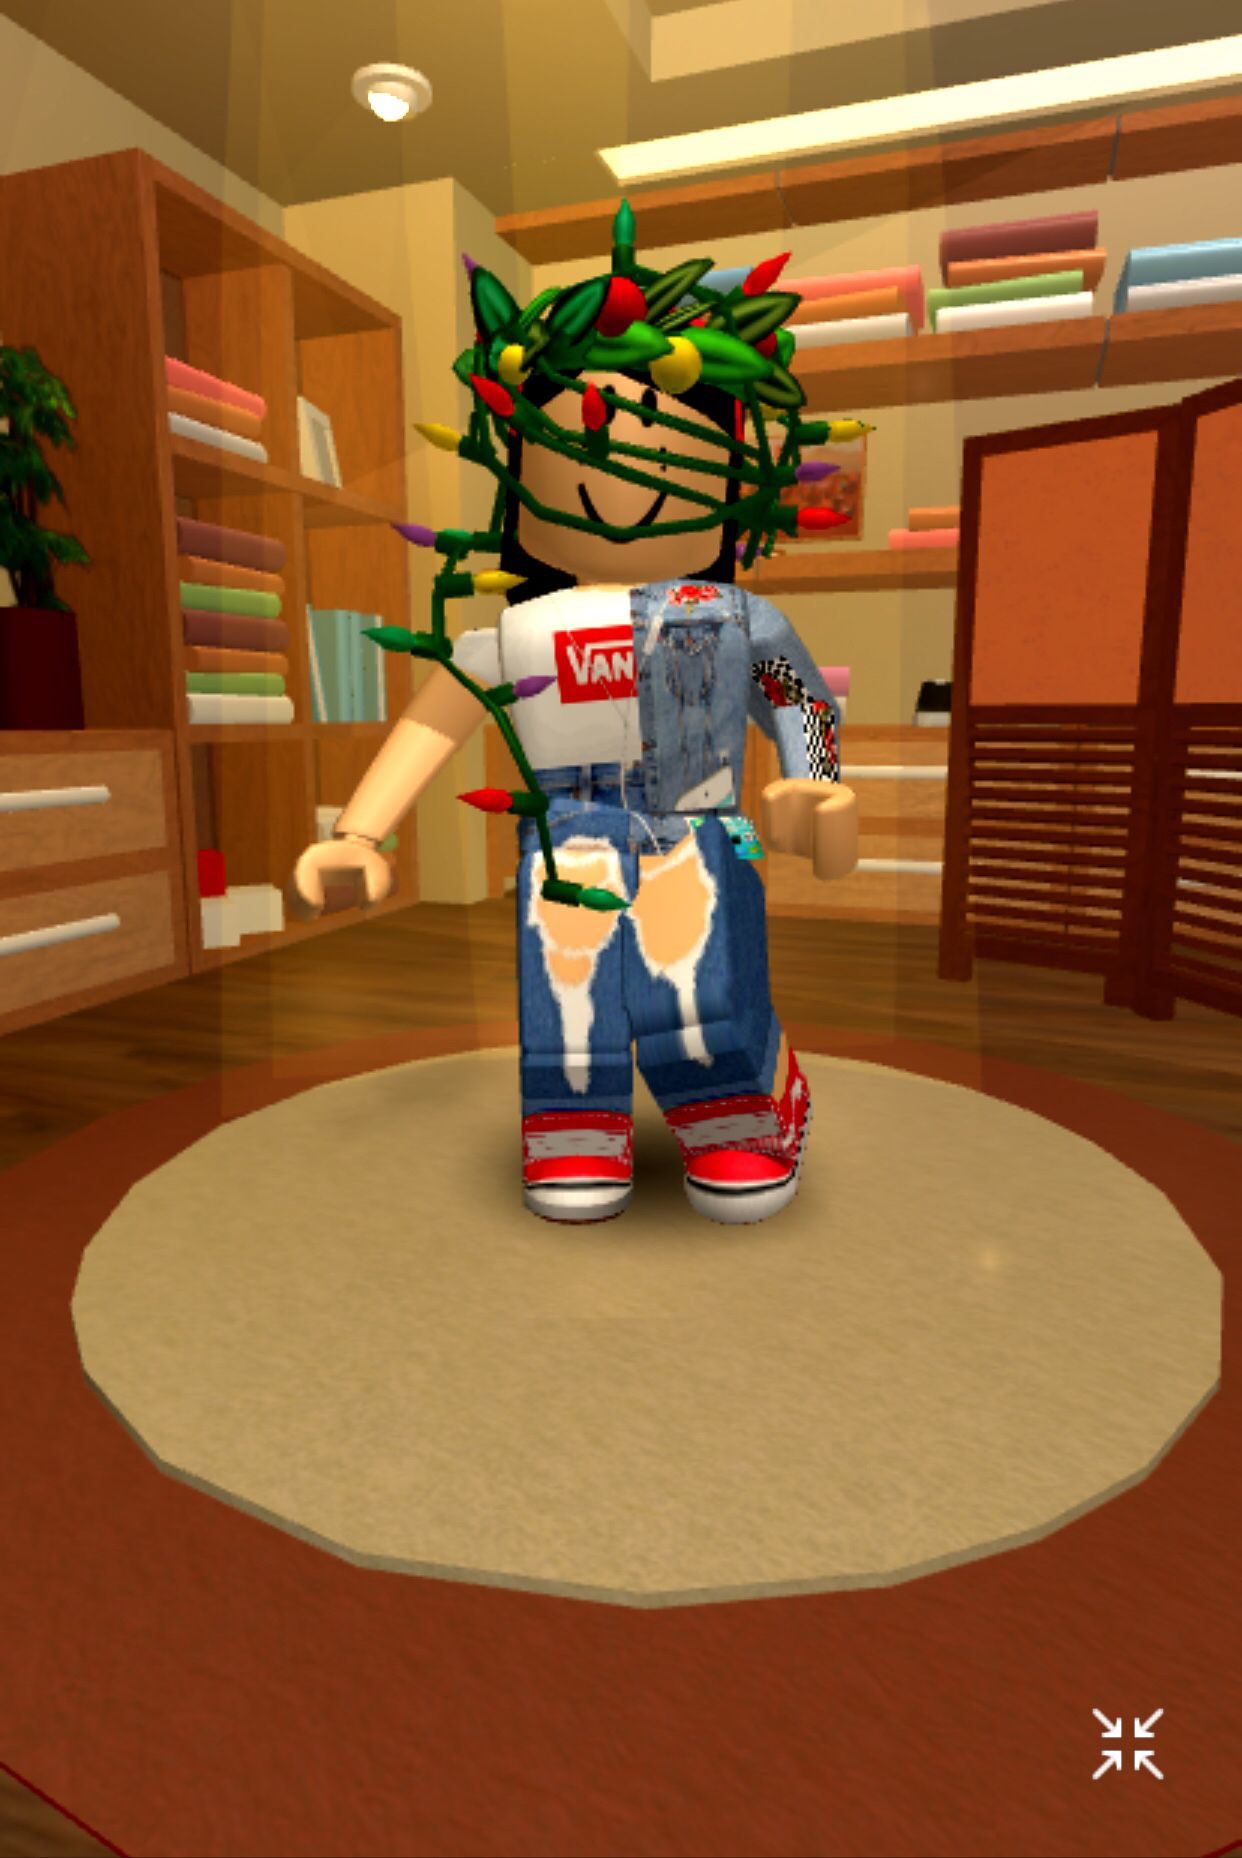 Vans Roblox Vans Aesthetic Roblox Pictures Cool Avatars Roblox